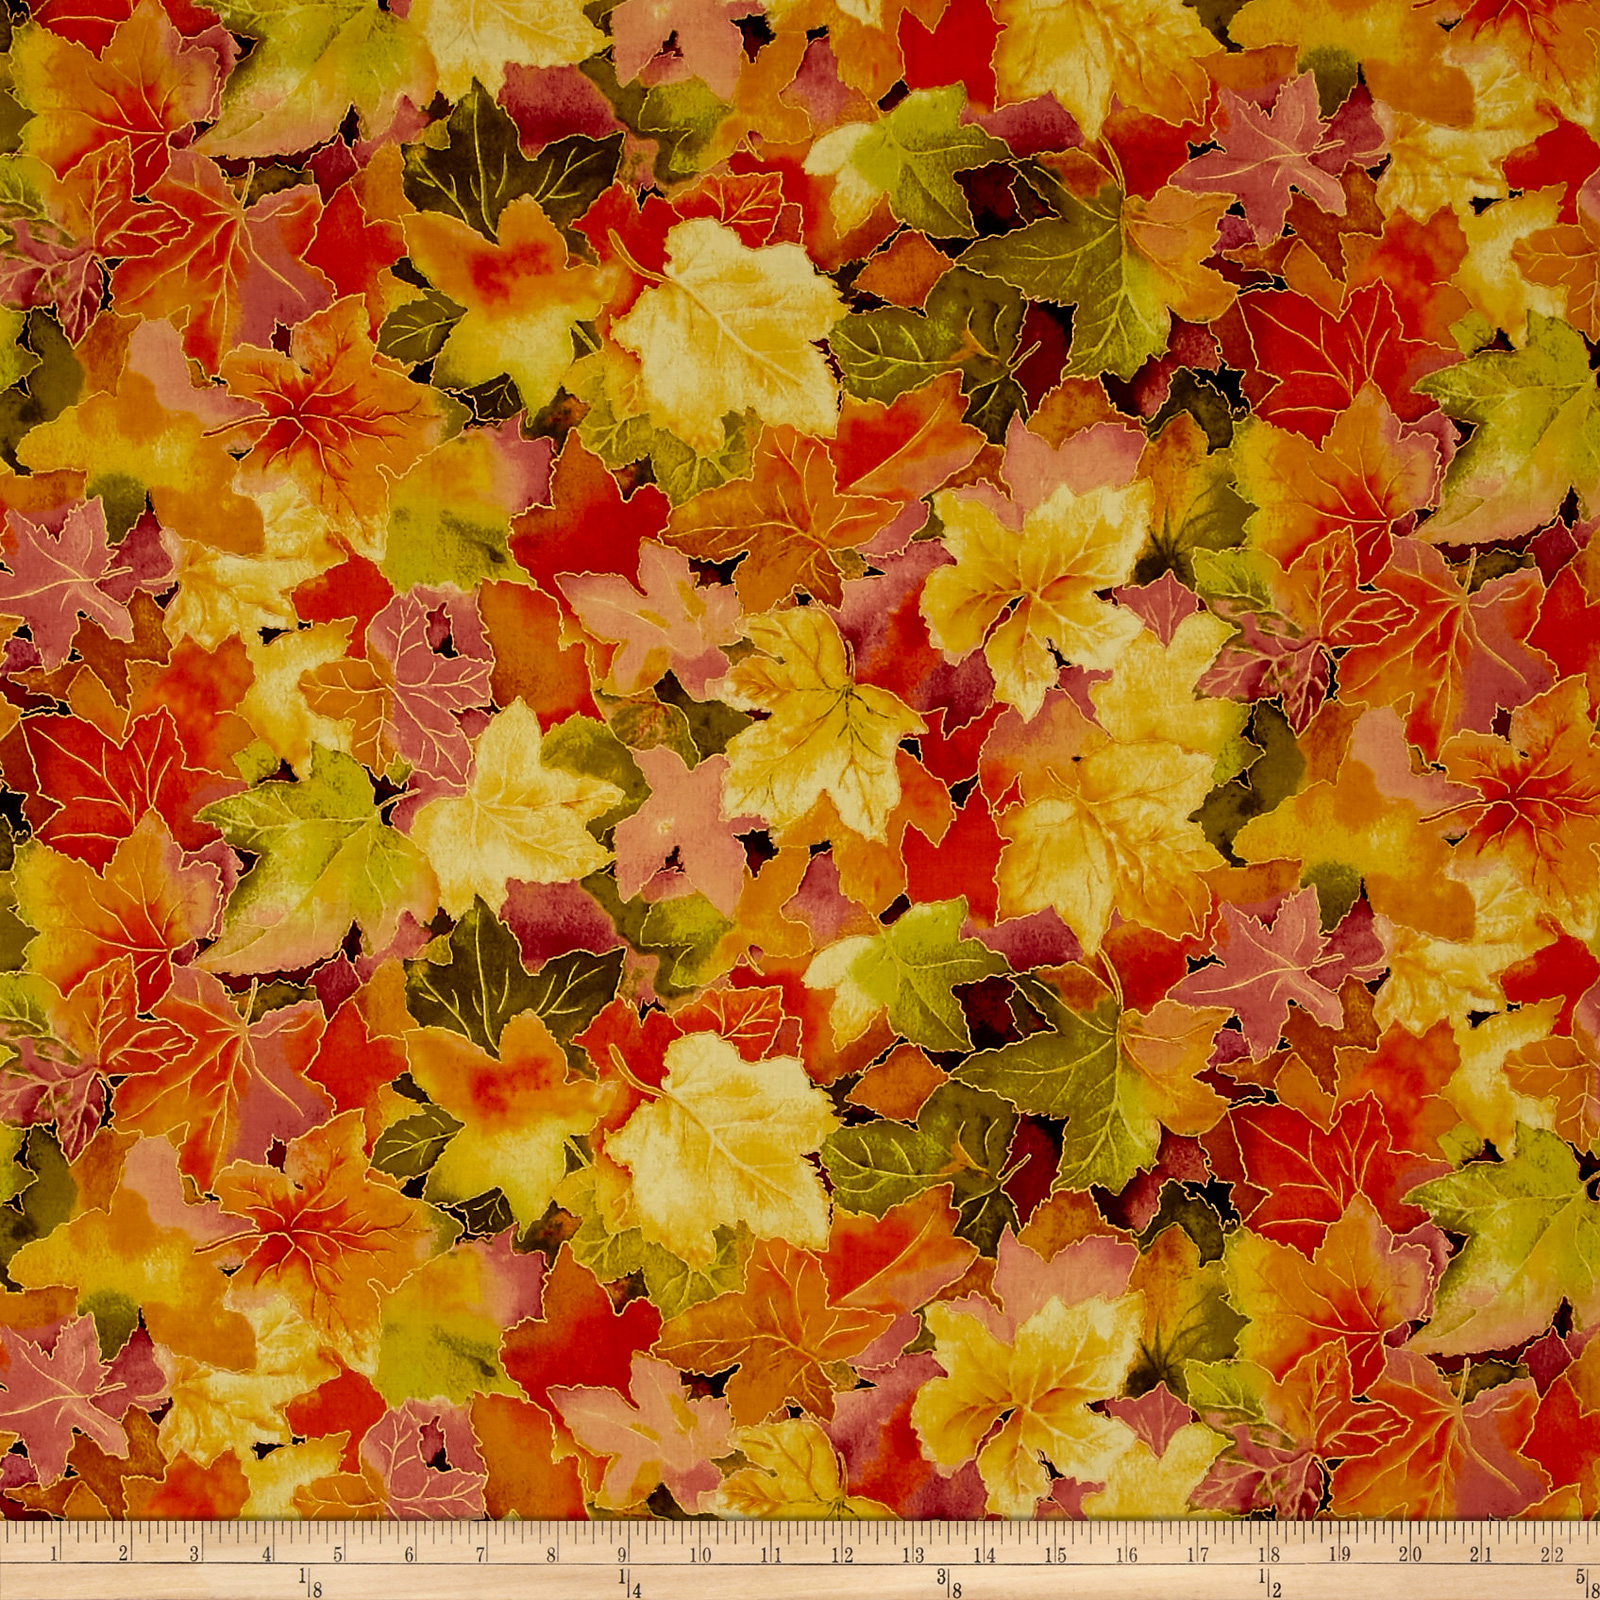 Autumn Air Metallic Forest Floor Mulberry Fabric 0513181